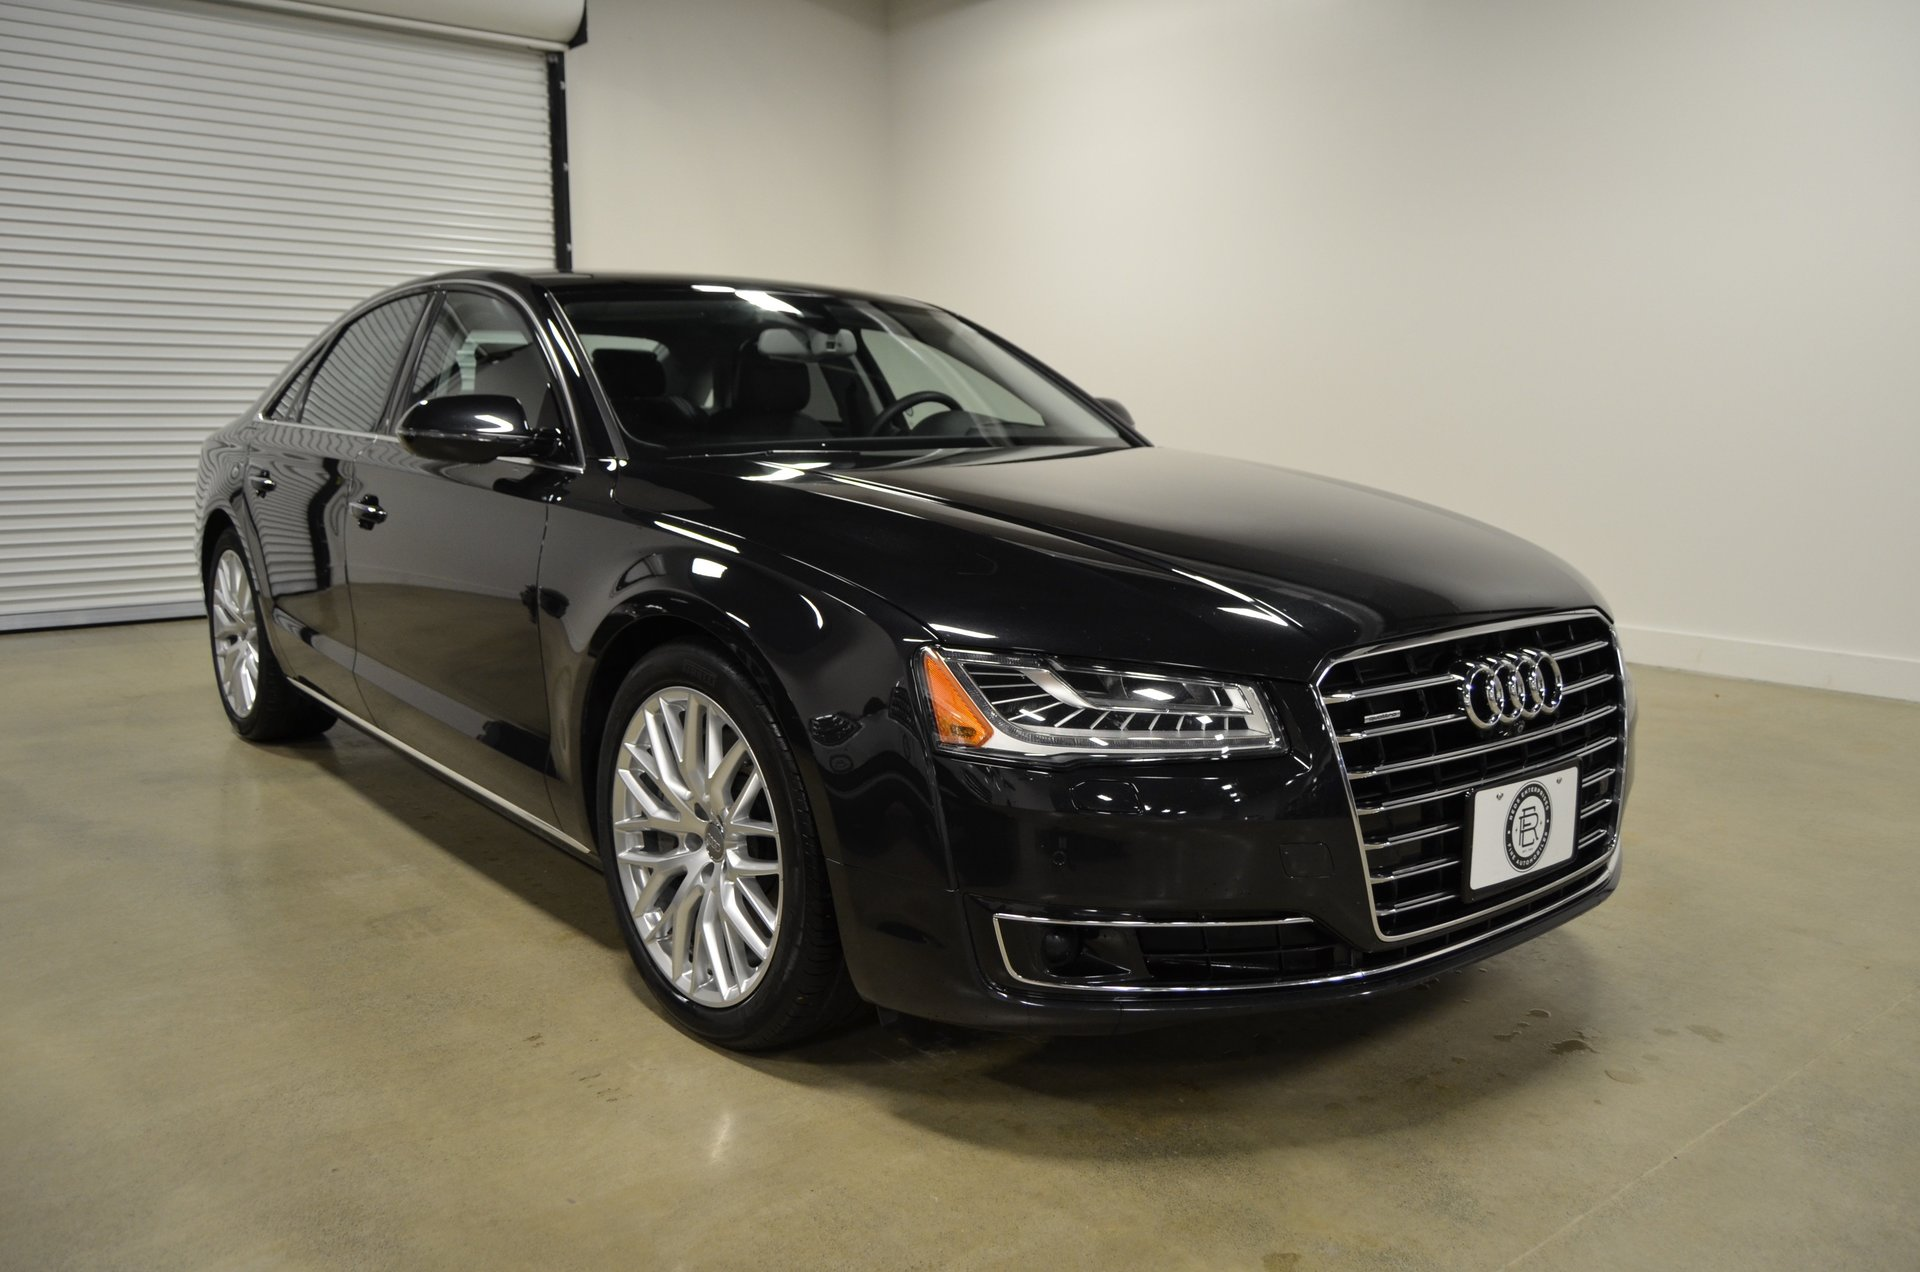 2015 audi a8 my classic garage. Black Bedroom Furniture Sets. Home Design Ideas